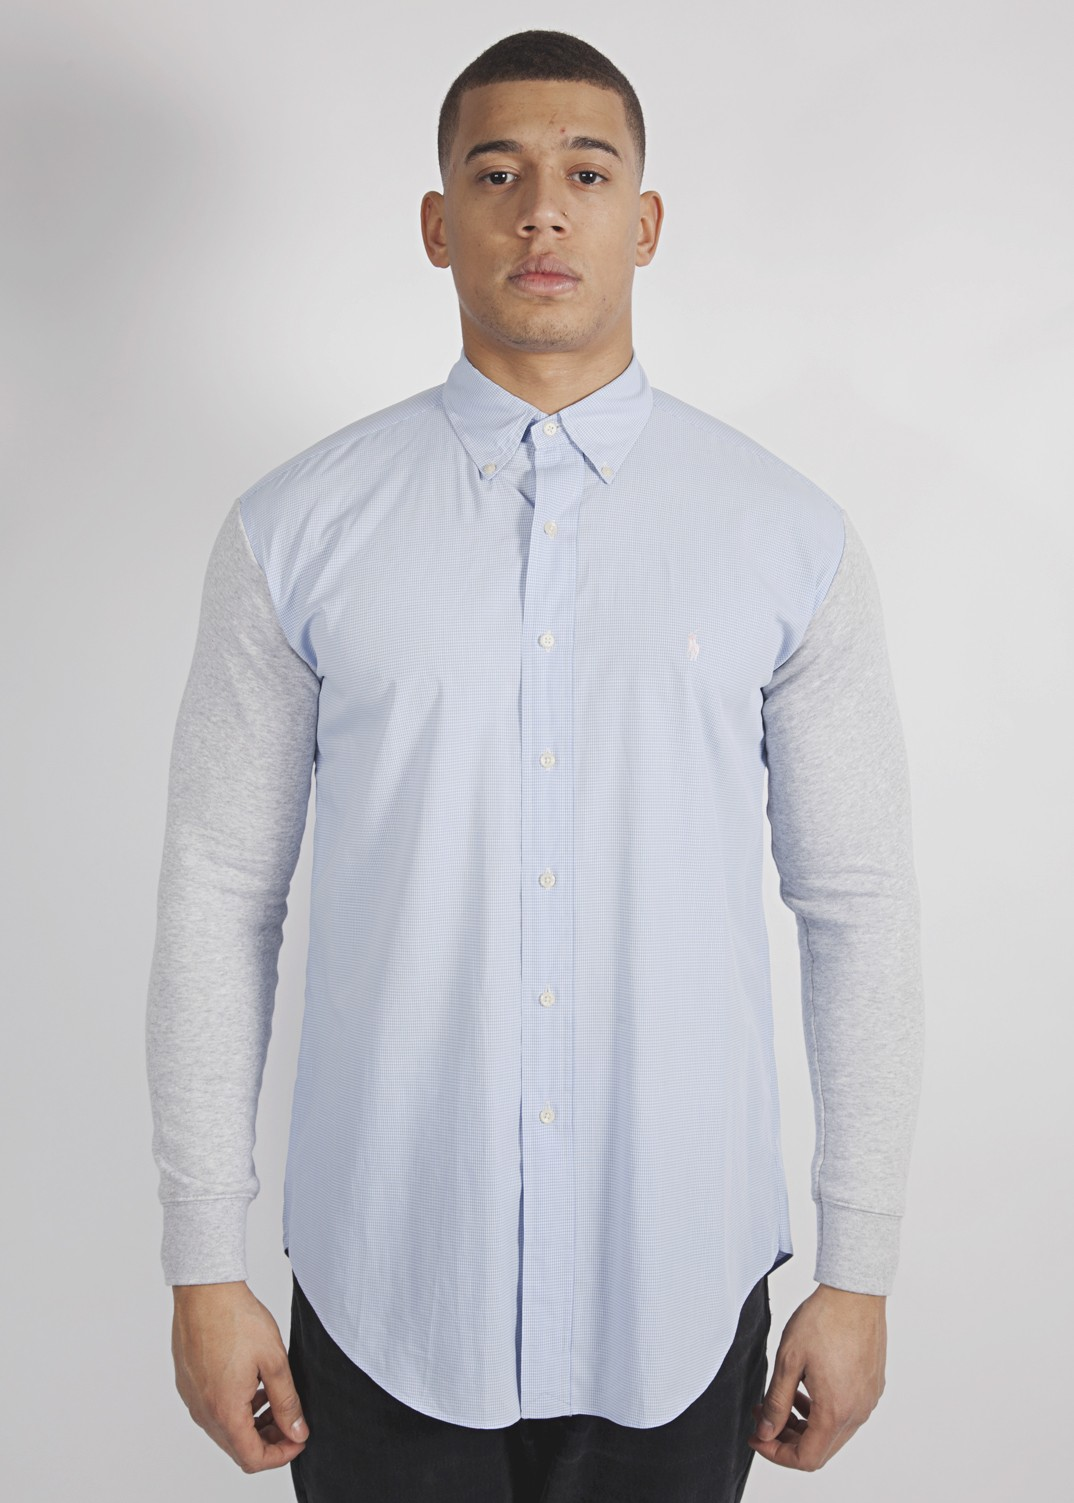 Ralph lauren light blue small checked shirt with grey sweat sleeves